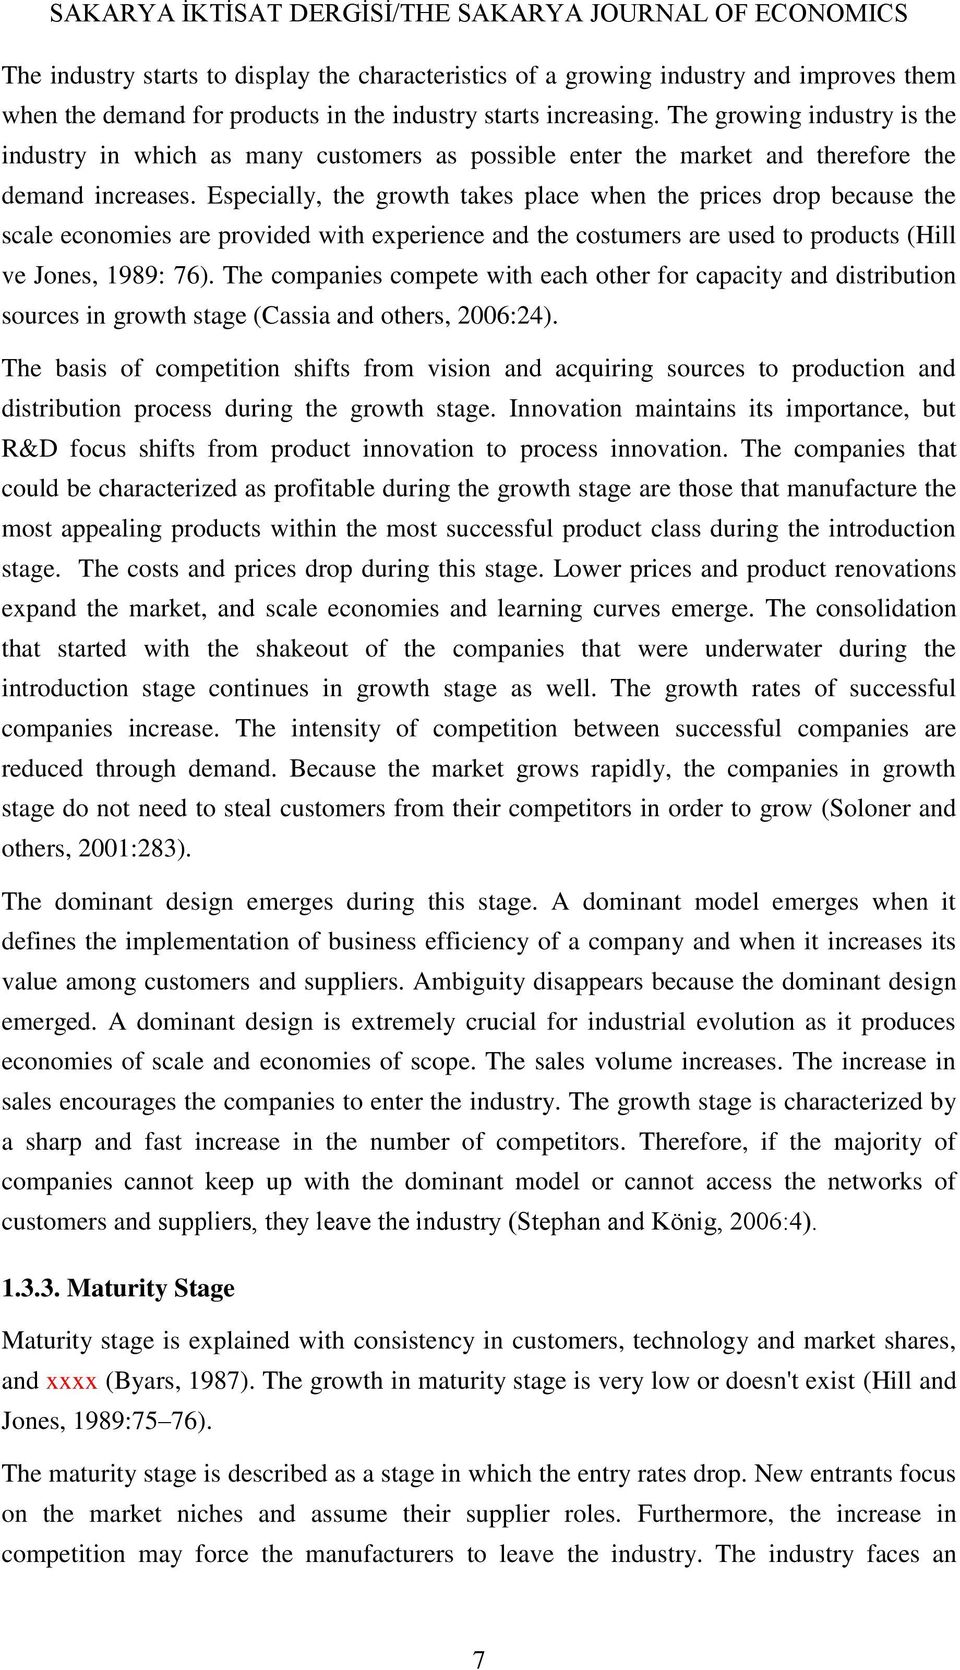 Especially, the growth takes place when the prices drop because the scale economies are provided with experience and the costumers are used to products (Hill ve Jones, 1989: 76).